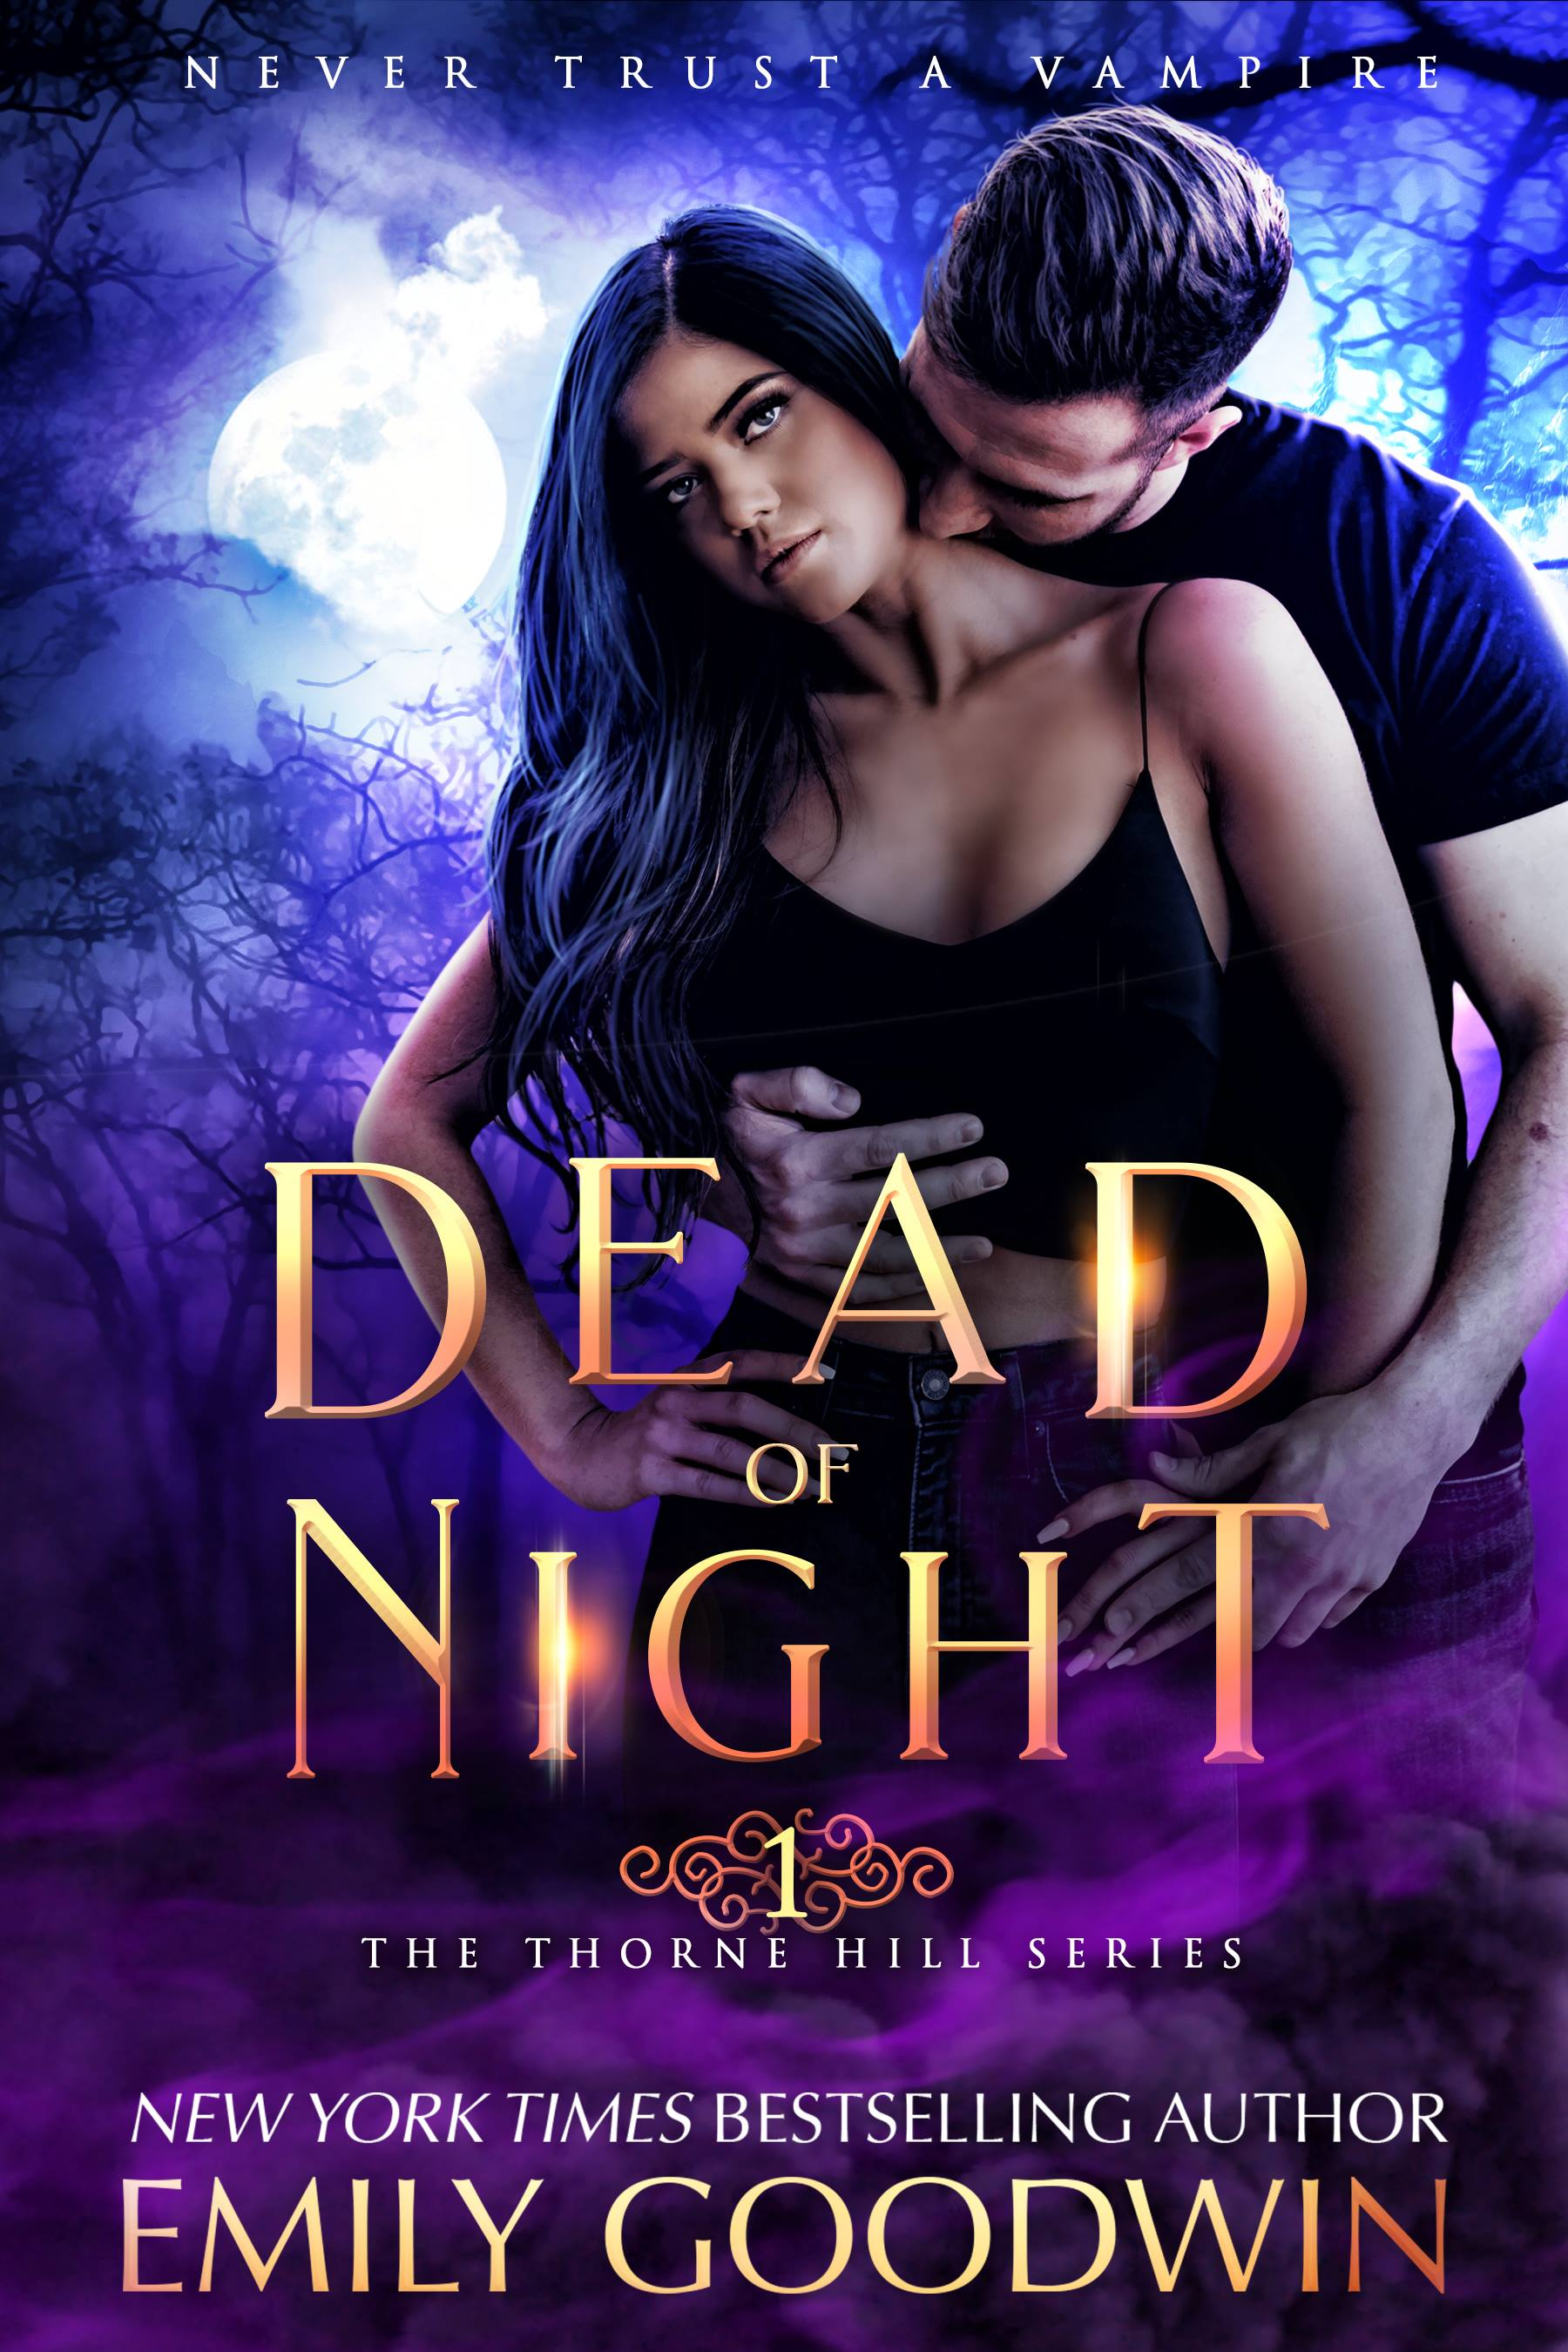 Dead of Night Book Cover.jpg